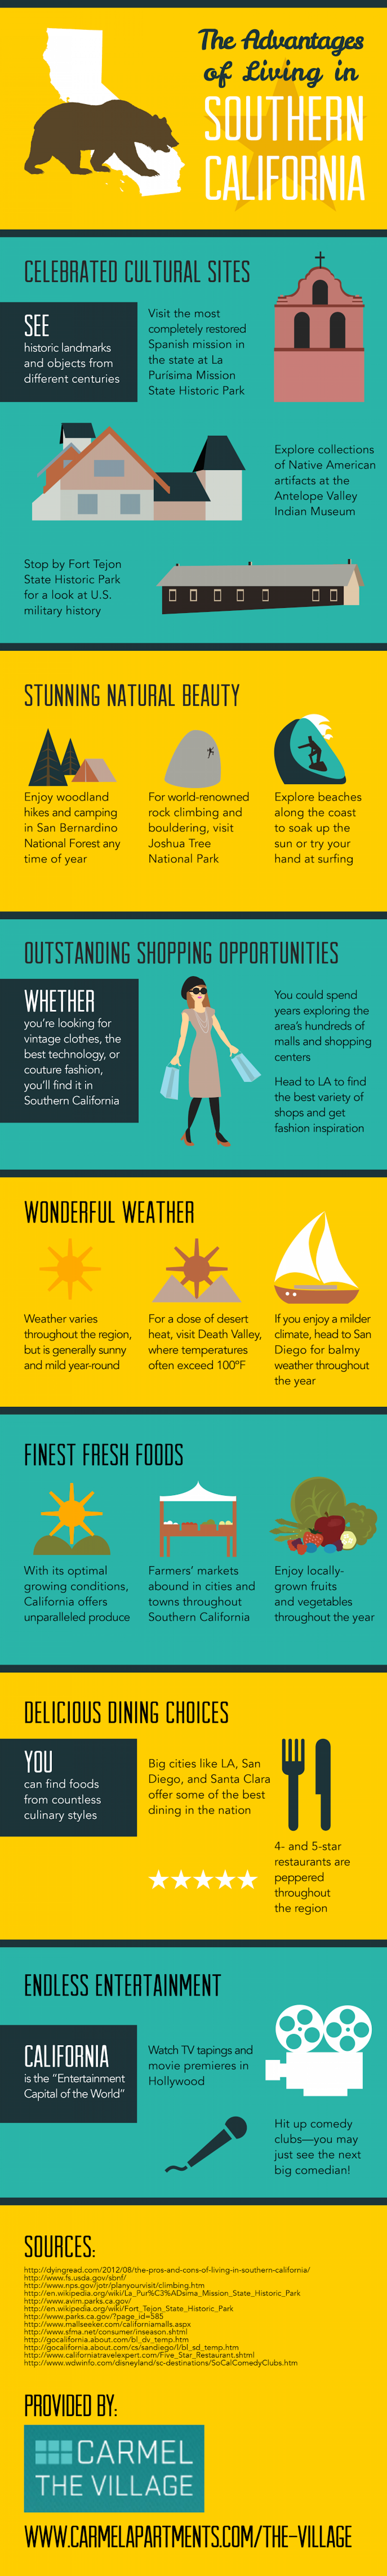 The Advantages of Living in Southern California Infographic